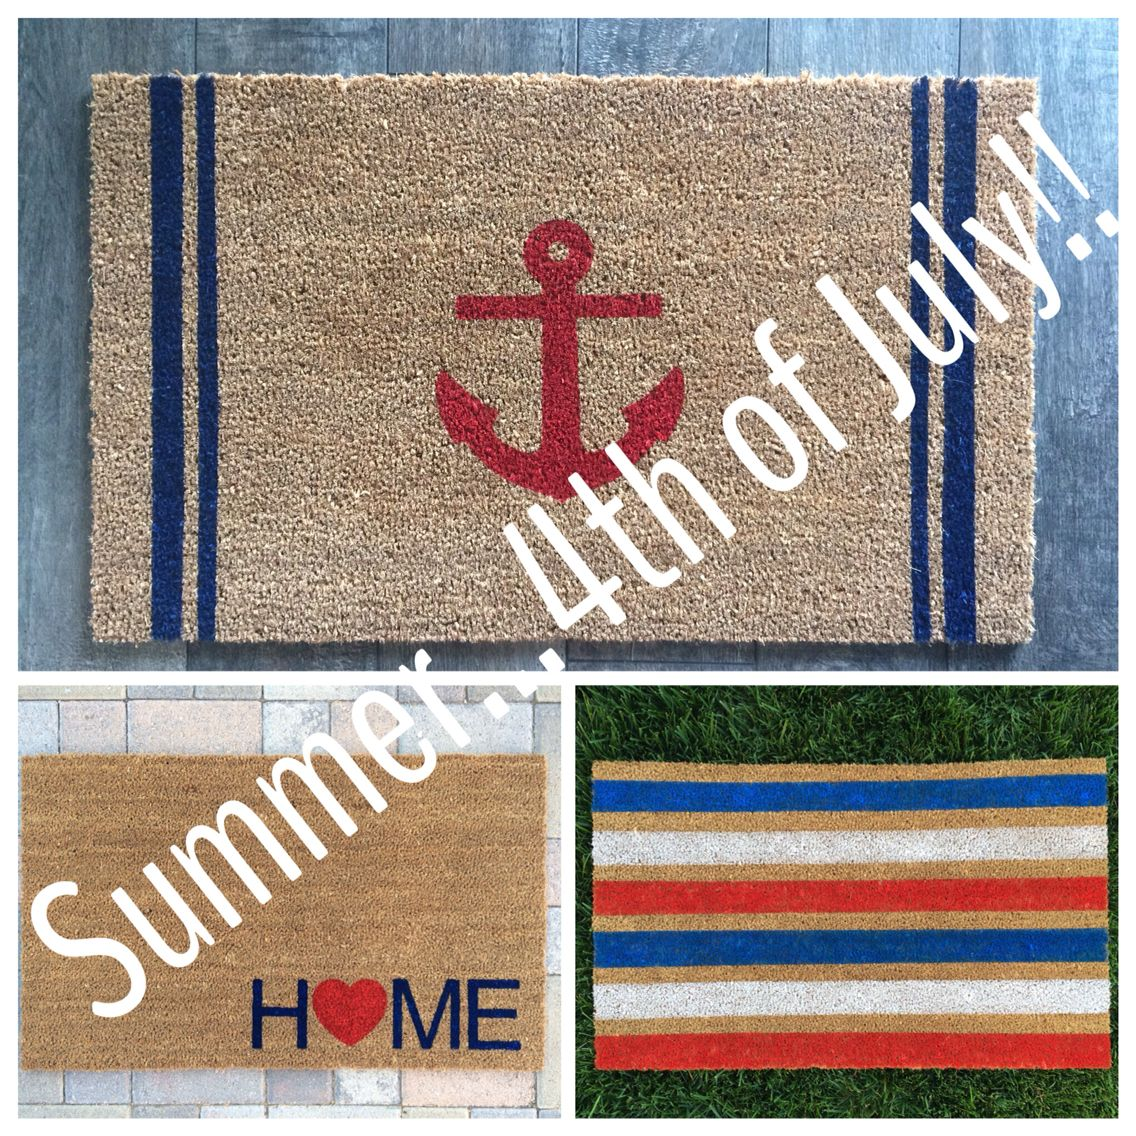 ideas for il friends is fullxfull gift mat customized this holiday us family welcome listing custom housewarming door mats doormat gifts styu